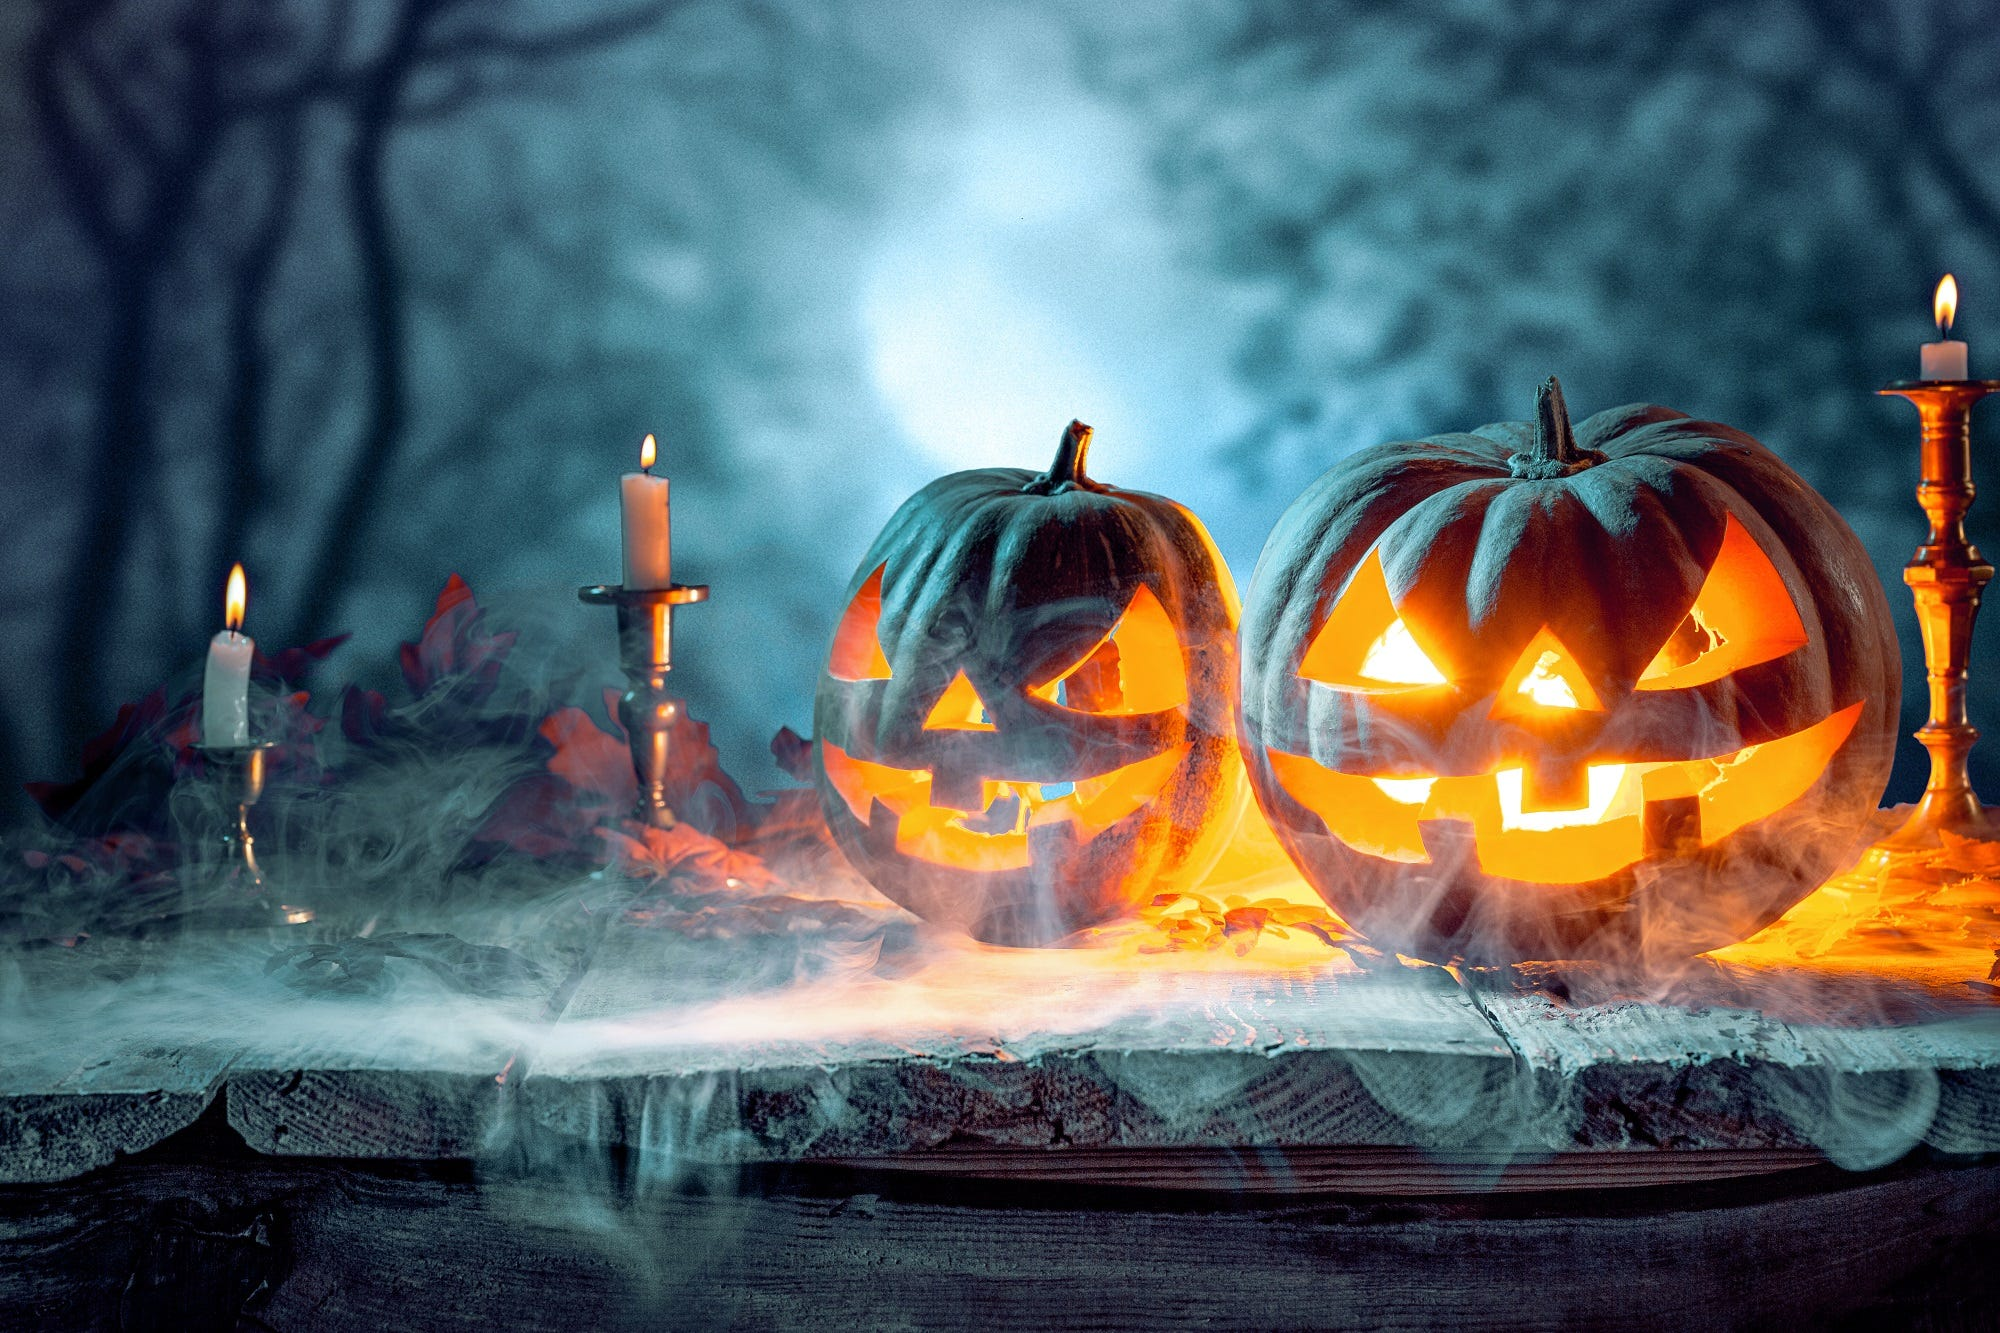 Halloween Las Cruces 2020 Halloween events taking place in the Las Cruces area